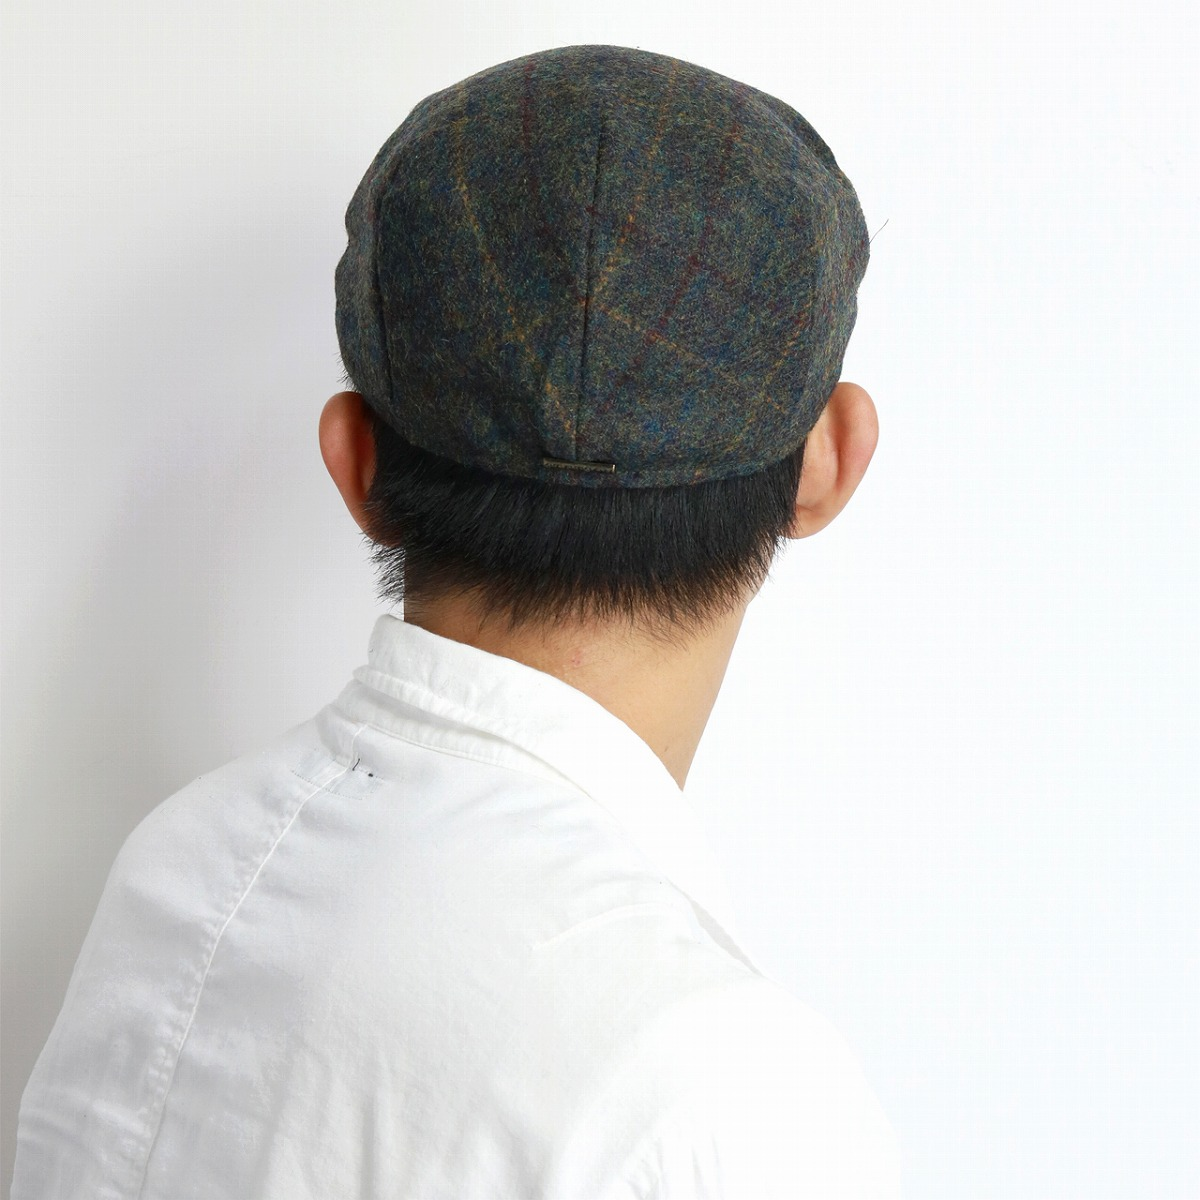 ... STETSON wool hunting cap men checked pattern Stetson hat USA import  brand hunting cap hat gentleman a90a4b032a74